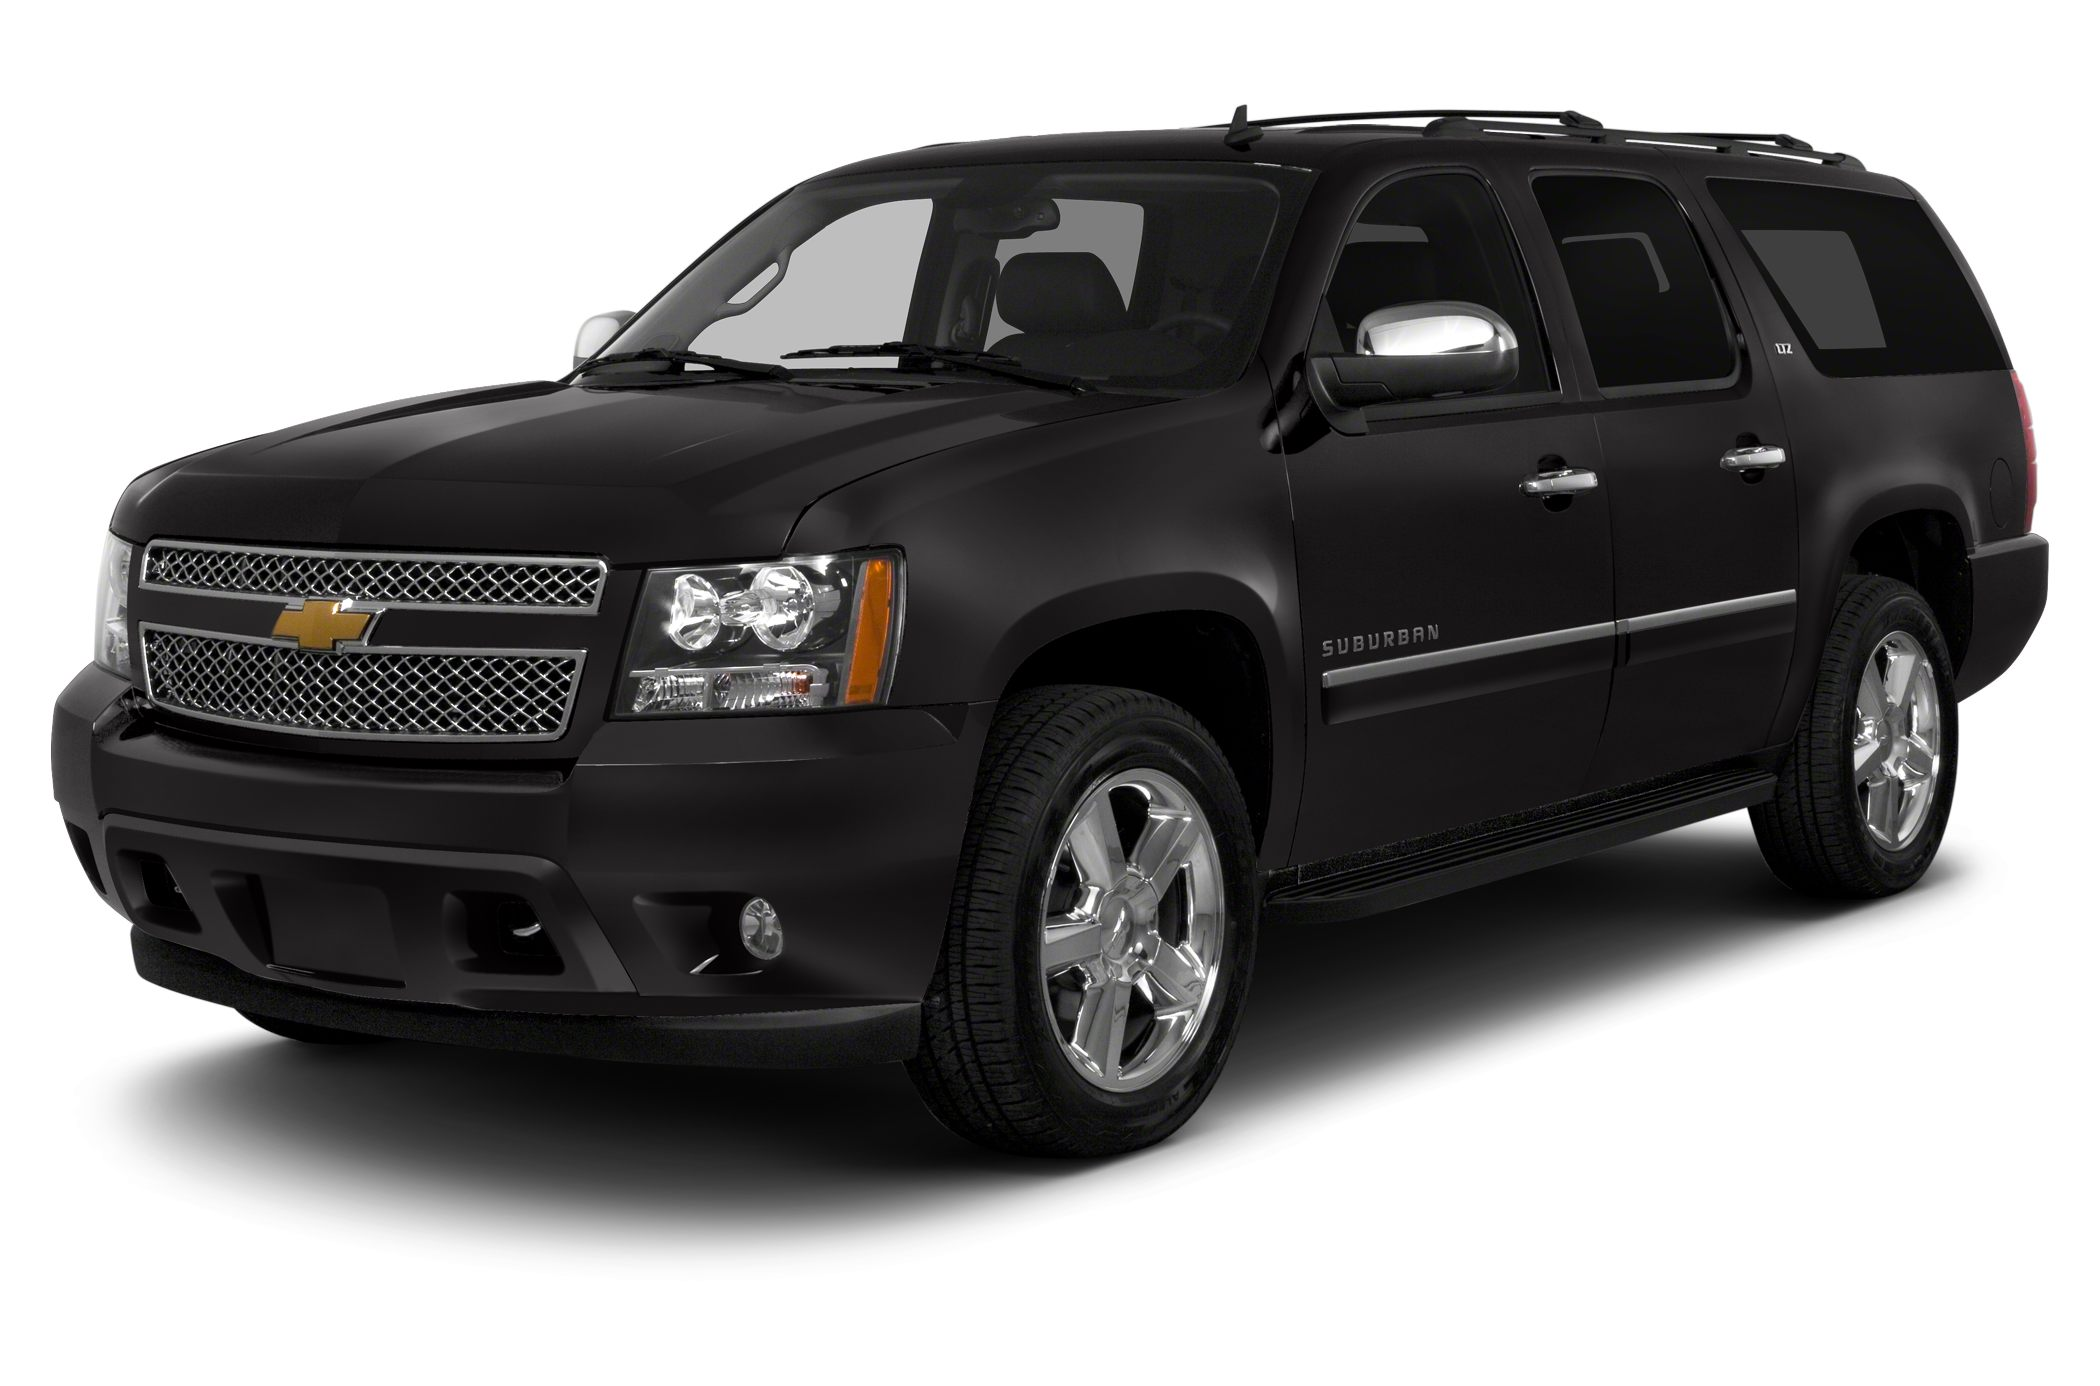 2014 Chevrolet Suburban 1500 LTZ SUV for sale in Waynesboro for $47,995 with 41,684 miles